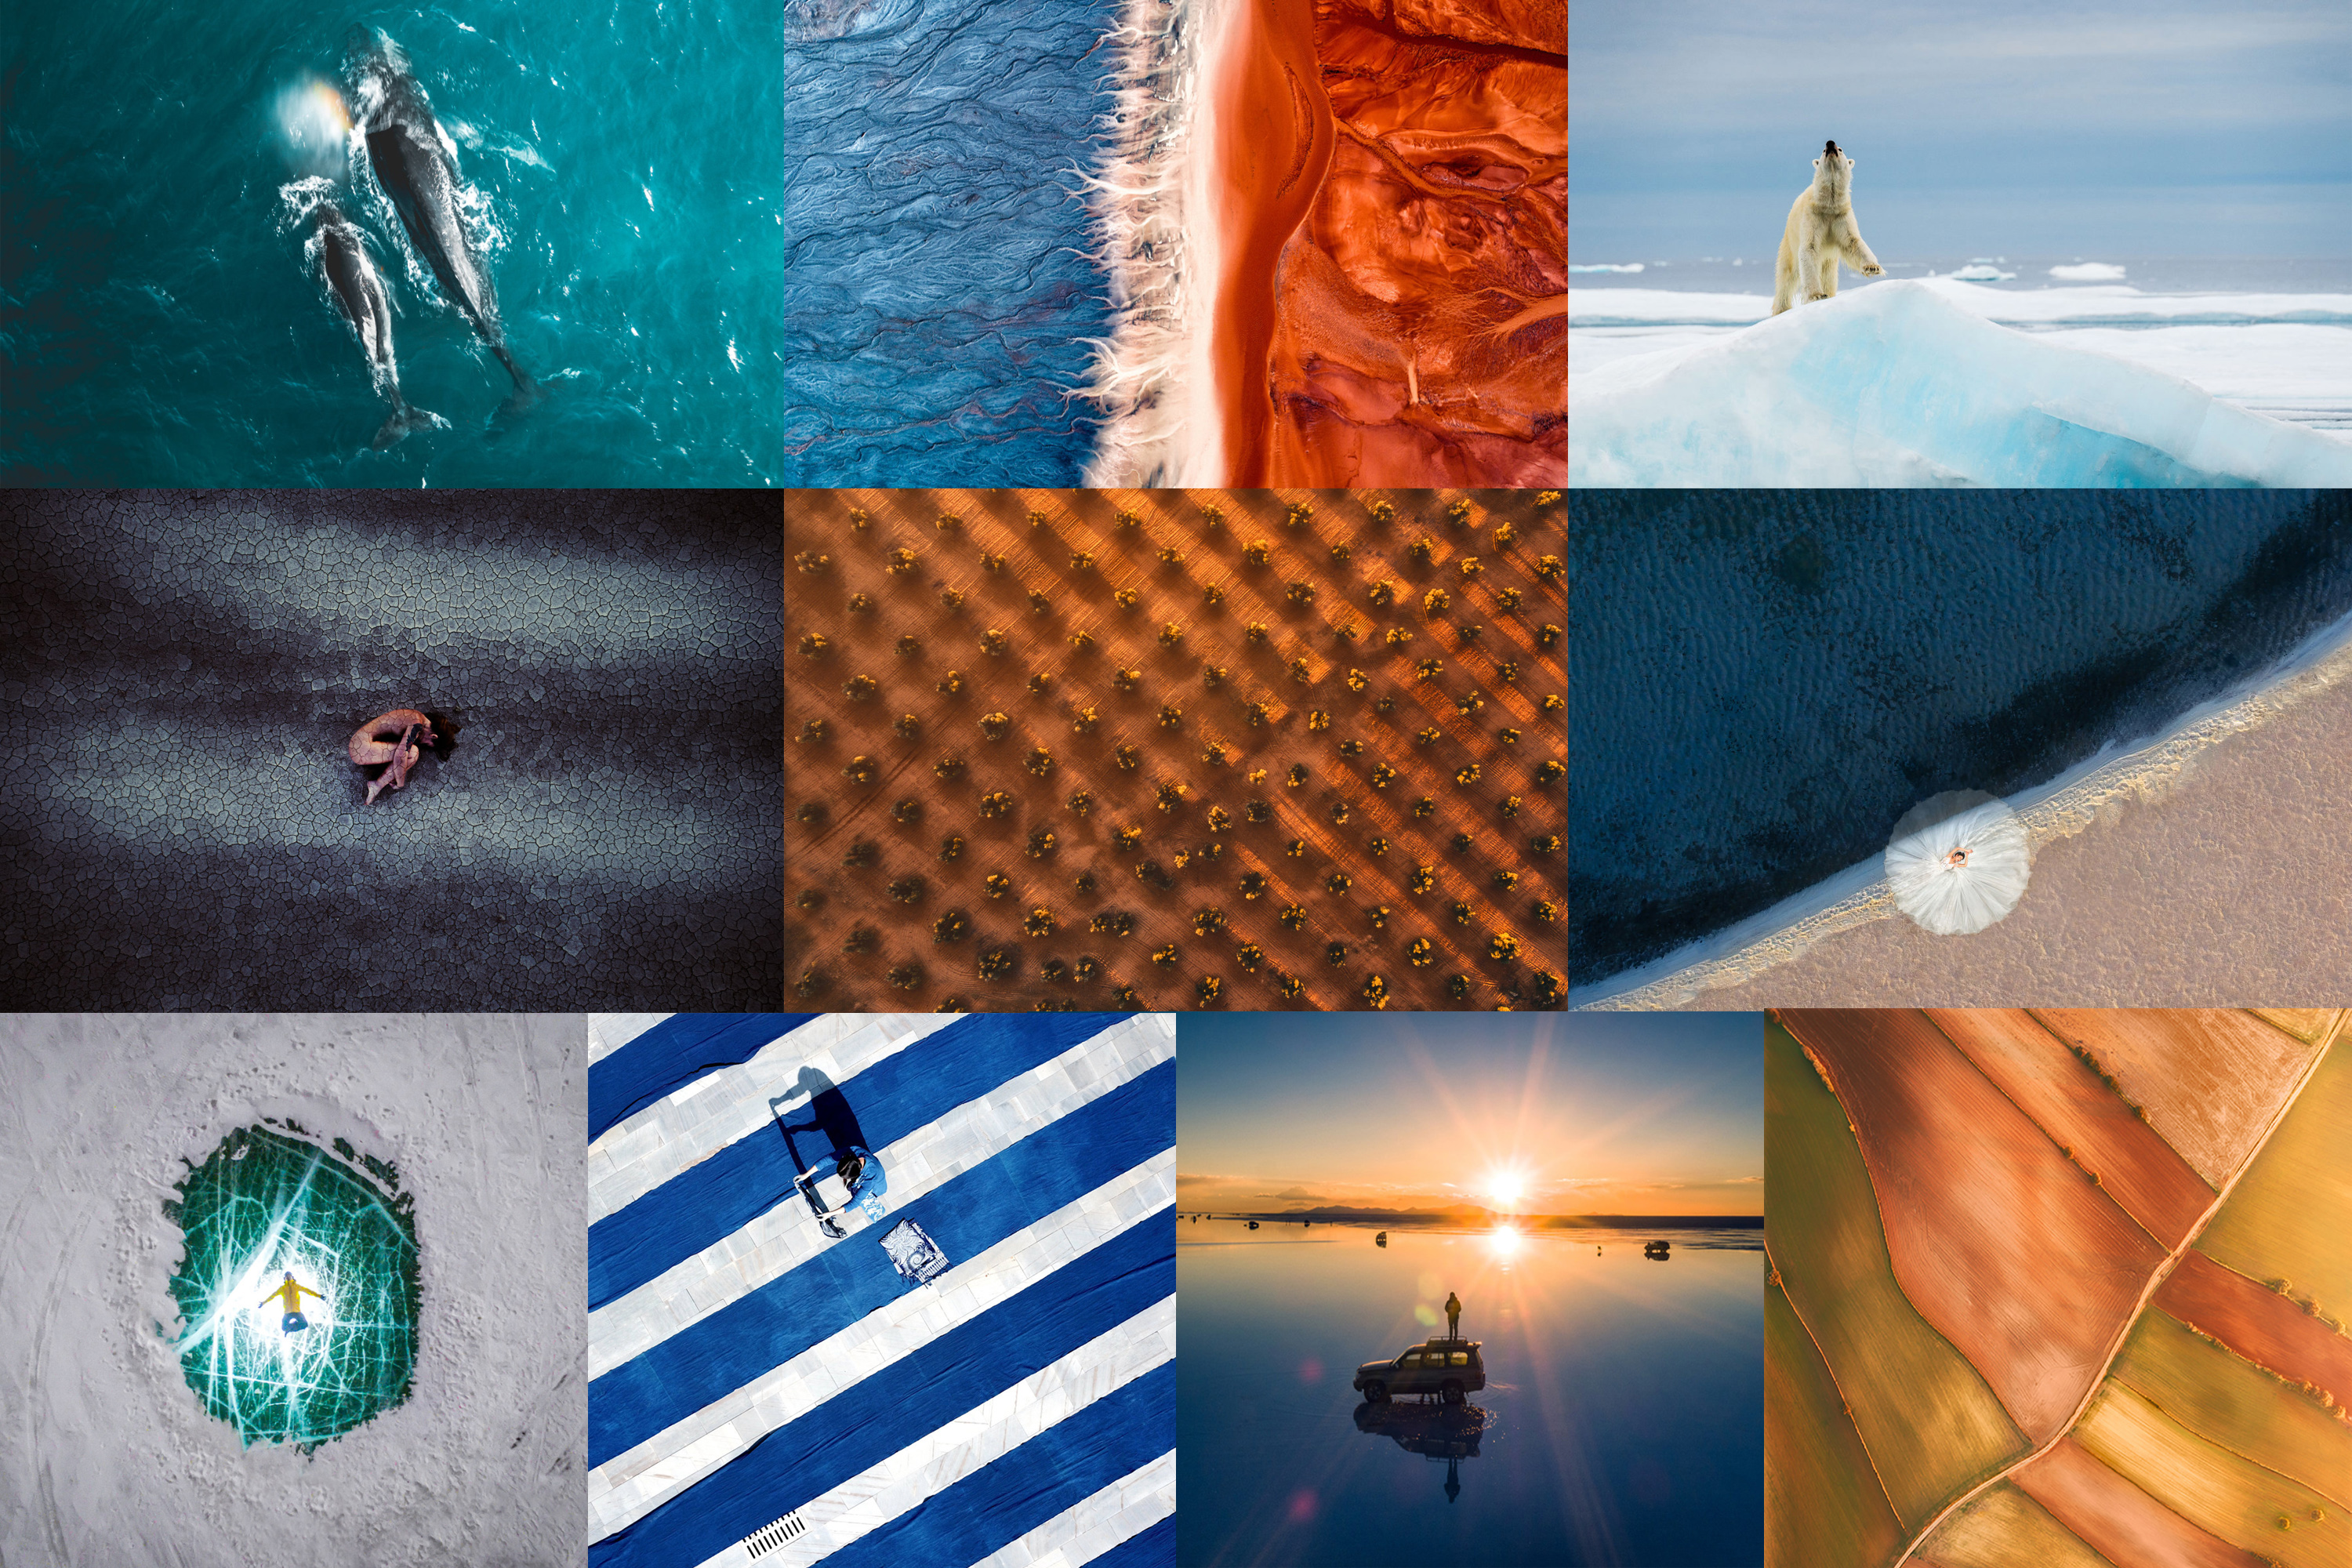 These 10 drone photos are the frontrunners to win DJI's SkyPixel contest